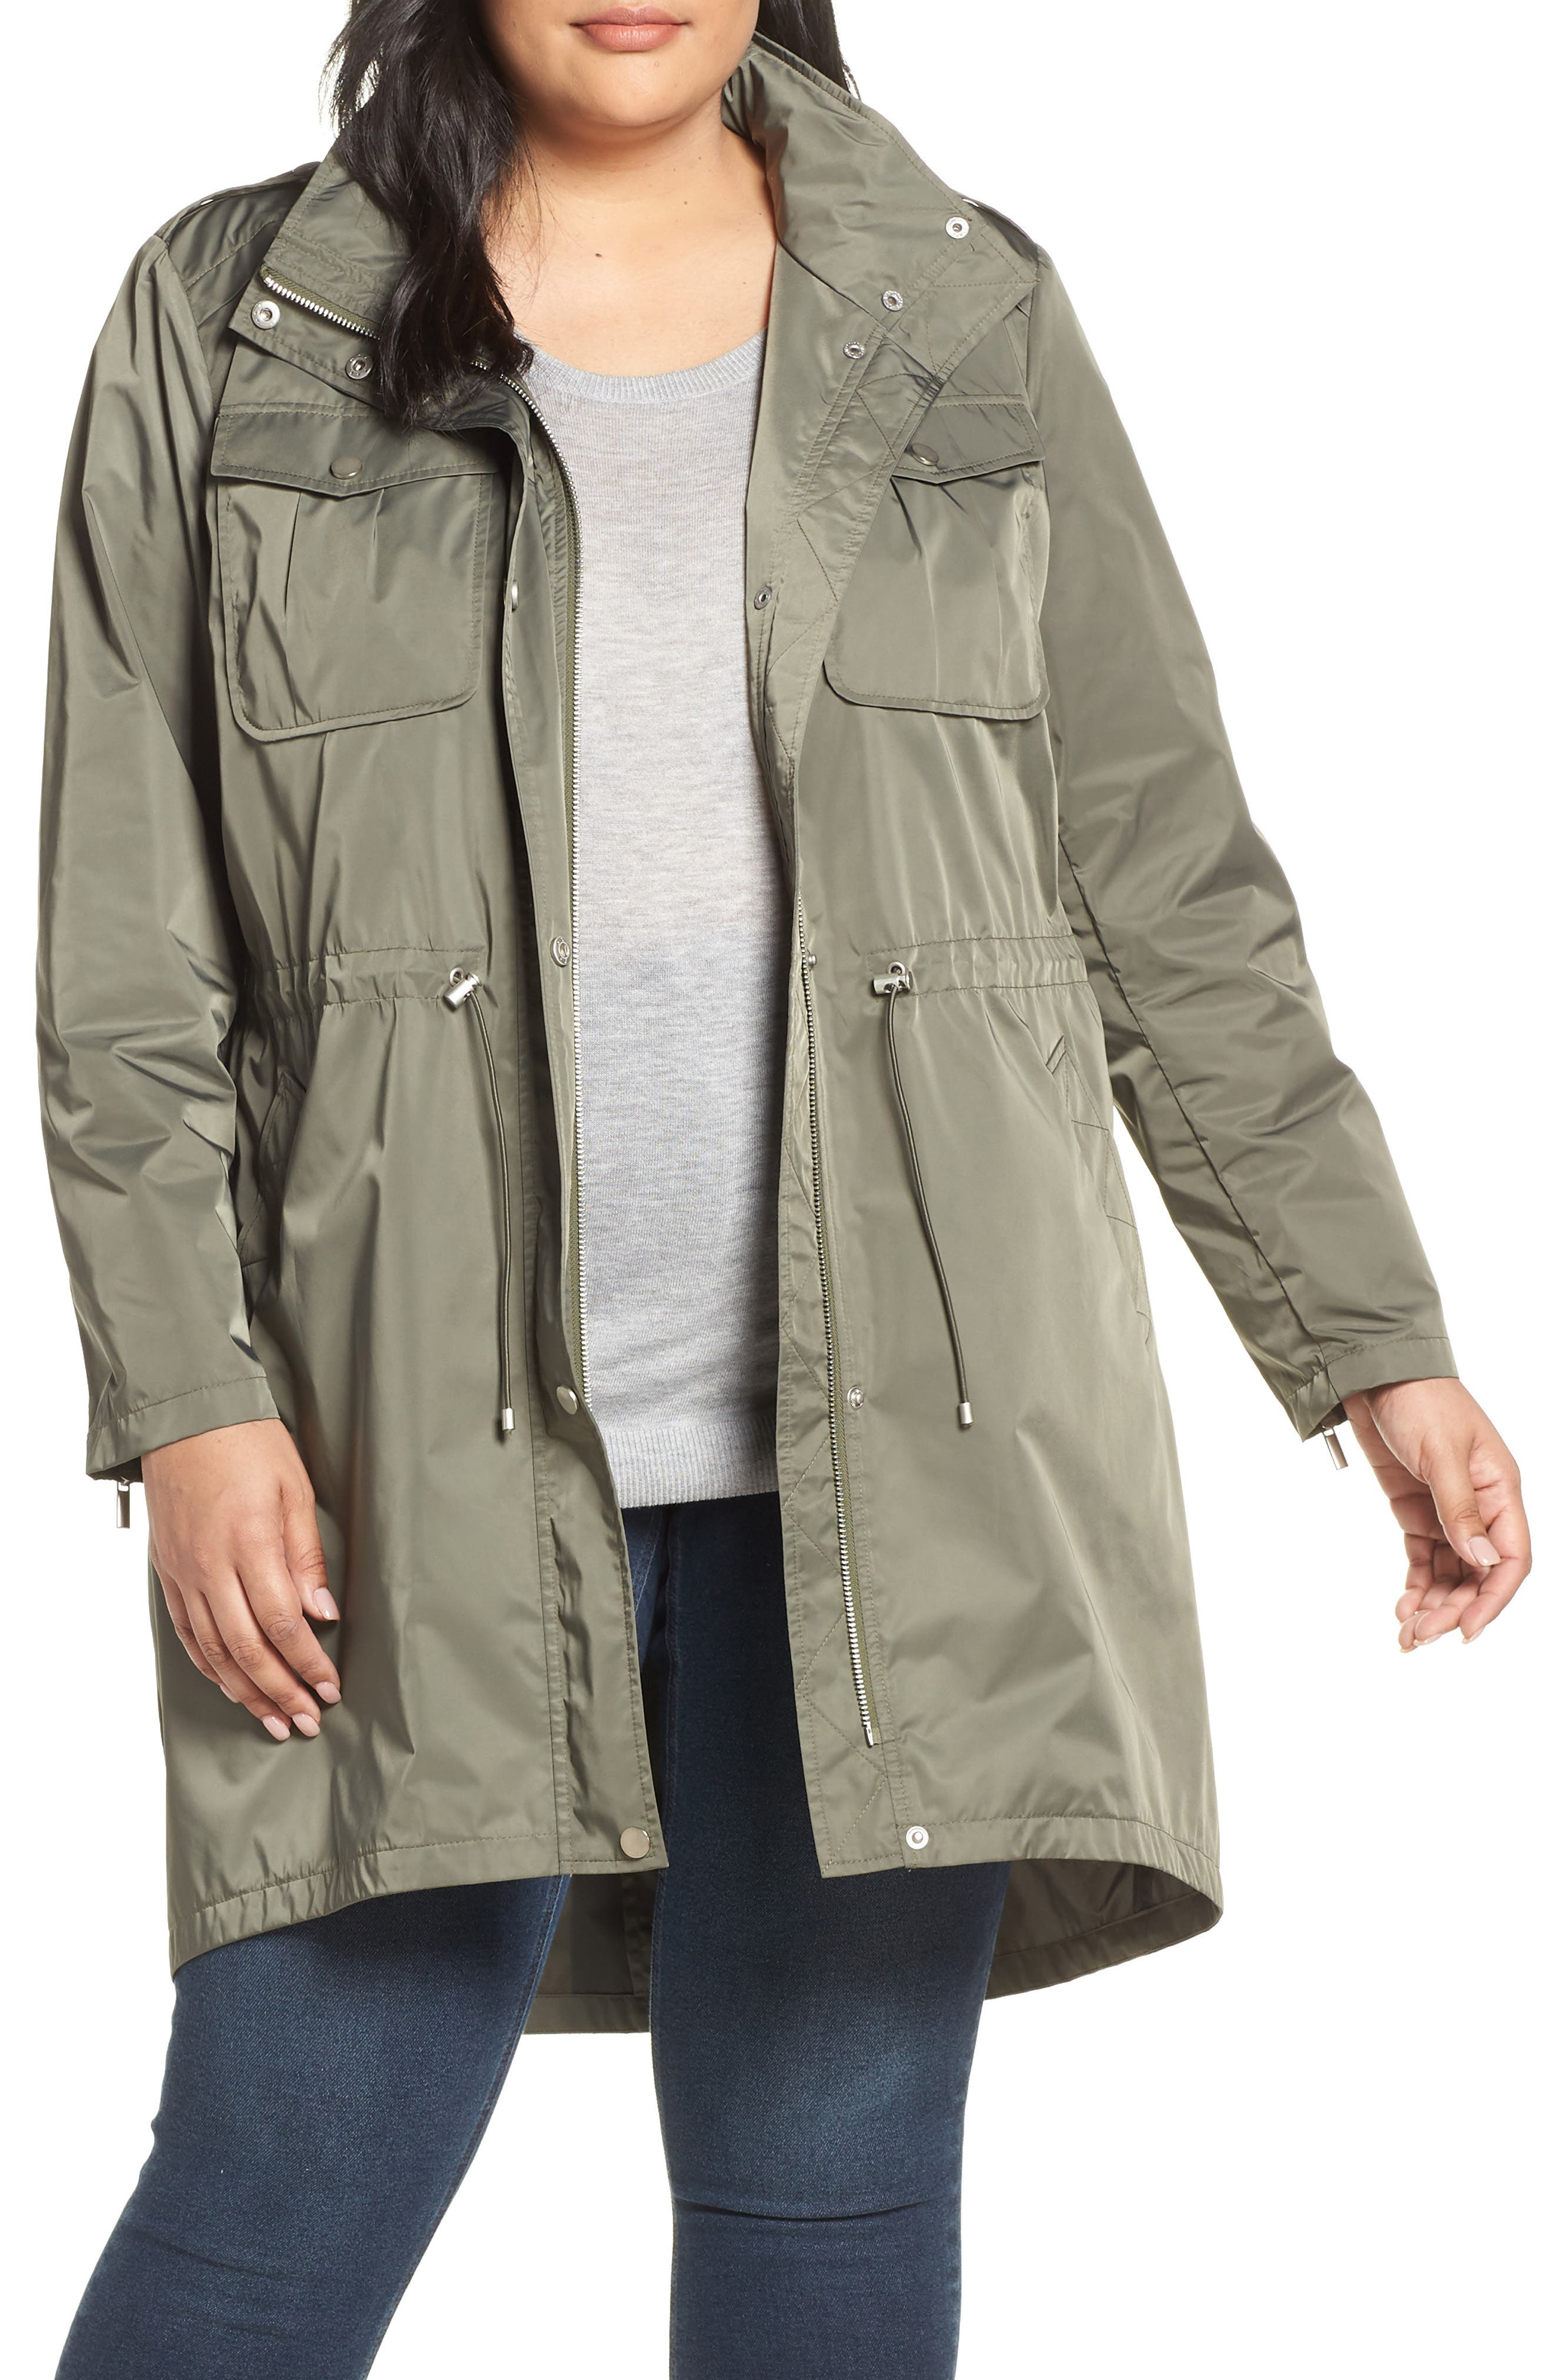 Badgley Mischka Dakota Raincoat,                             Main thumbnail 1, color,                             PALM